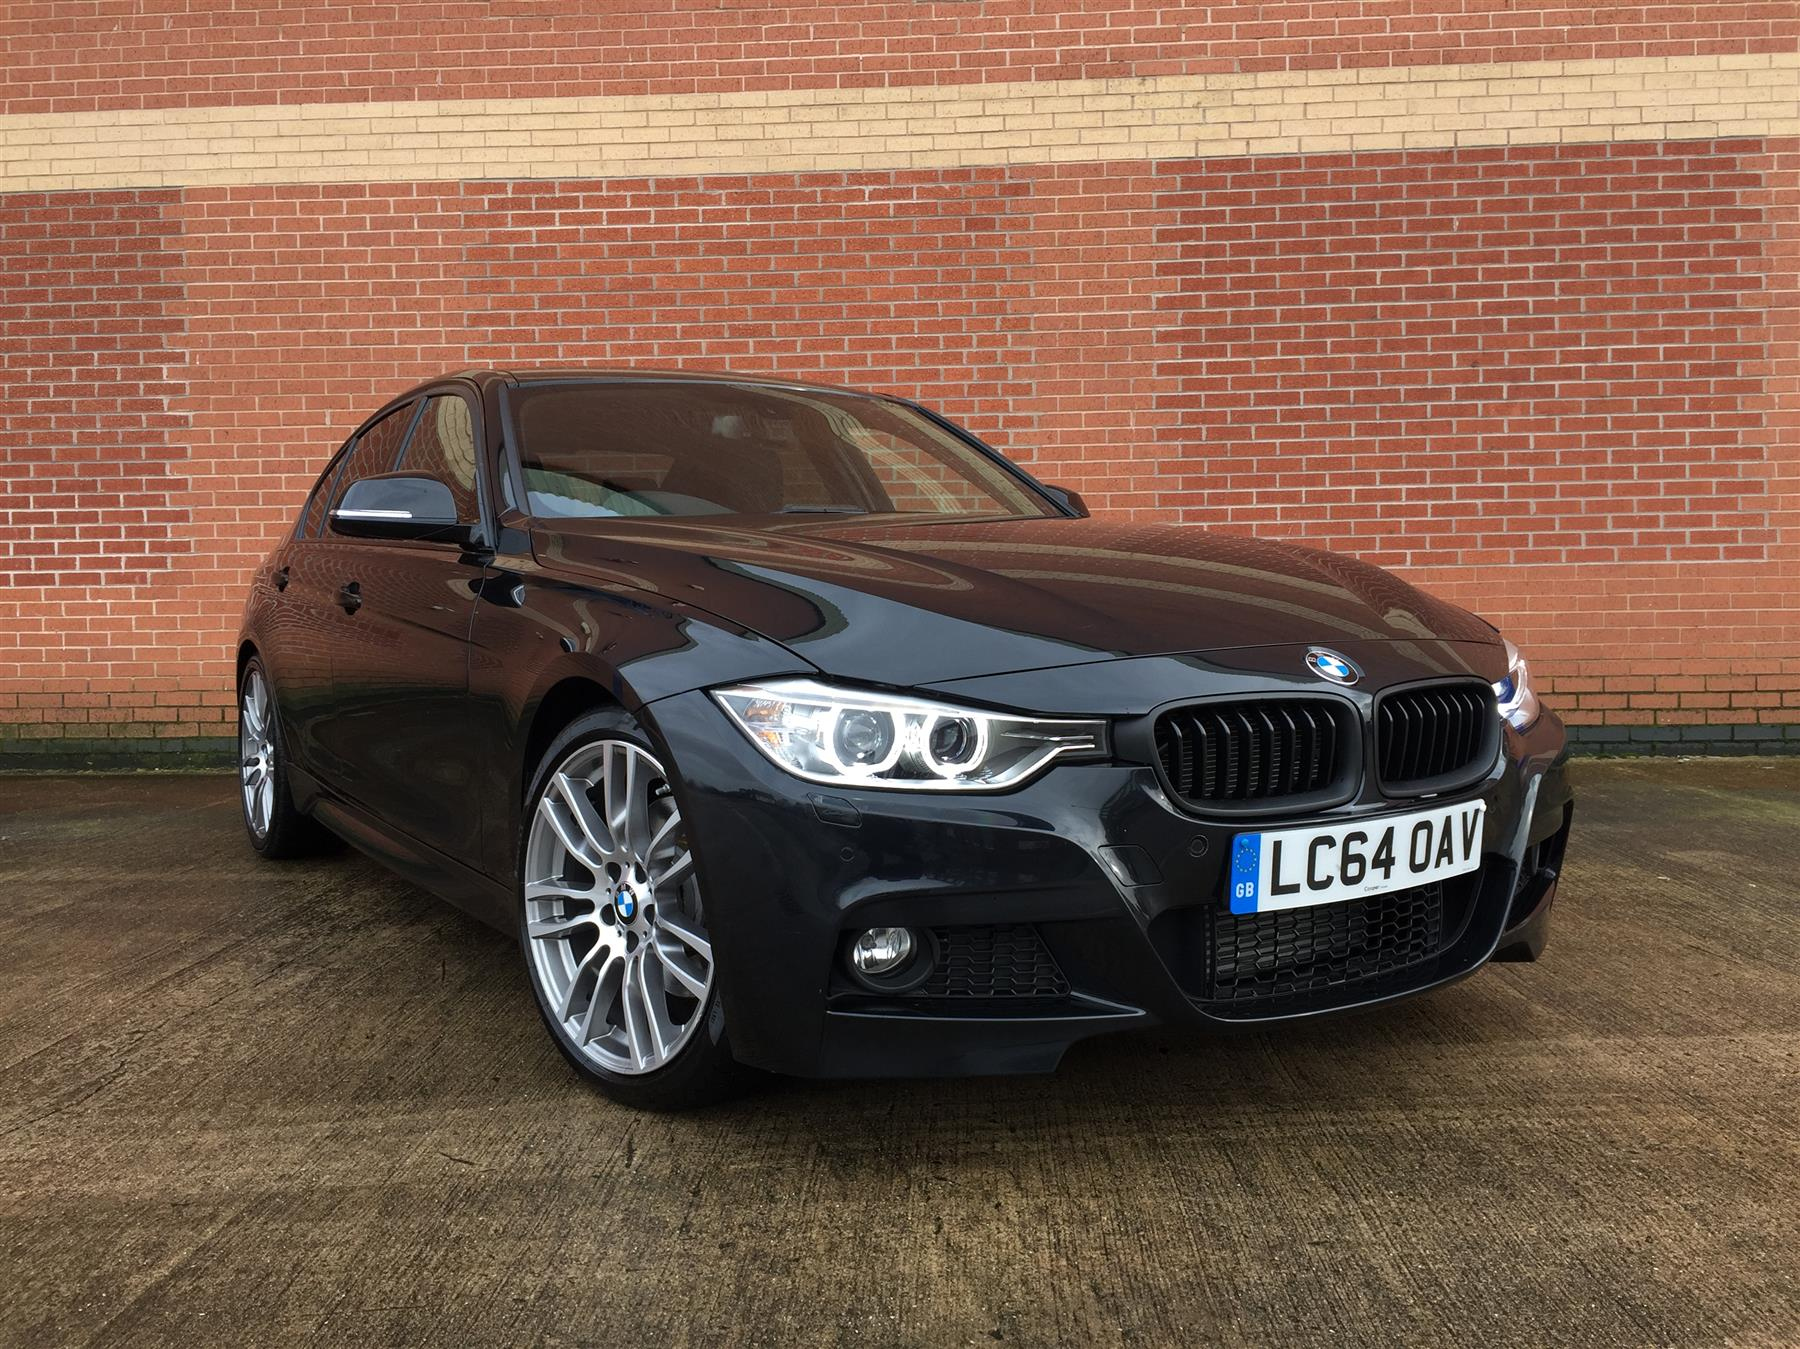 BMW 3 series 325d 2014 photo - 1